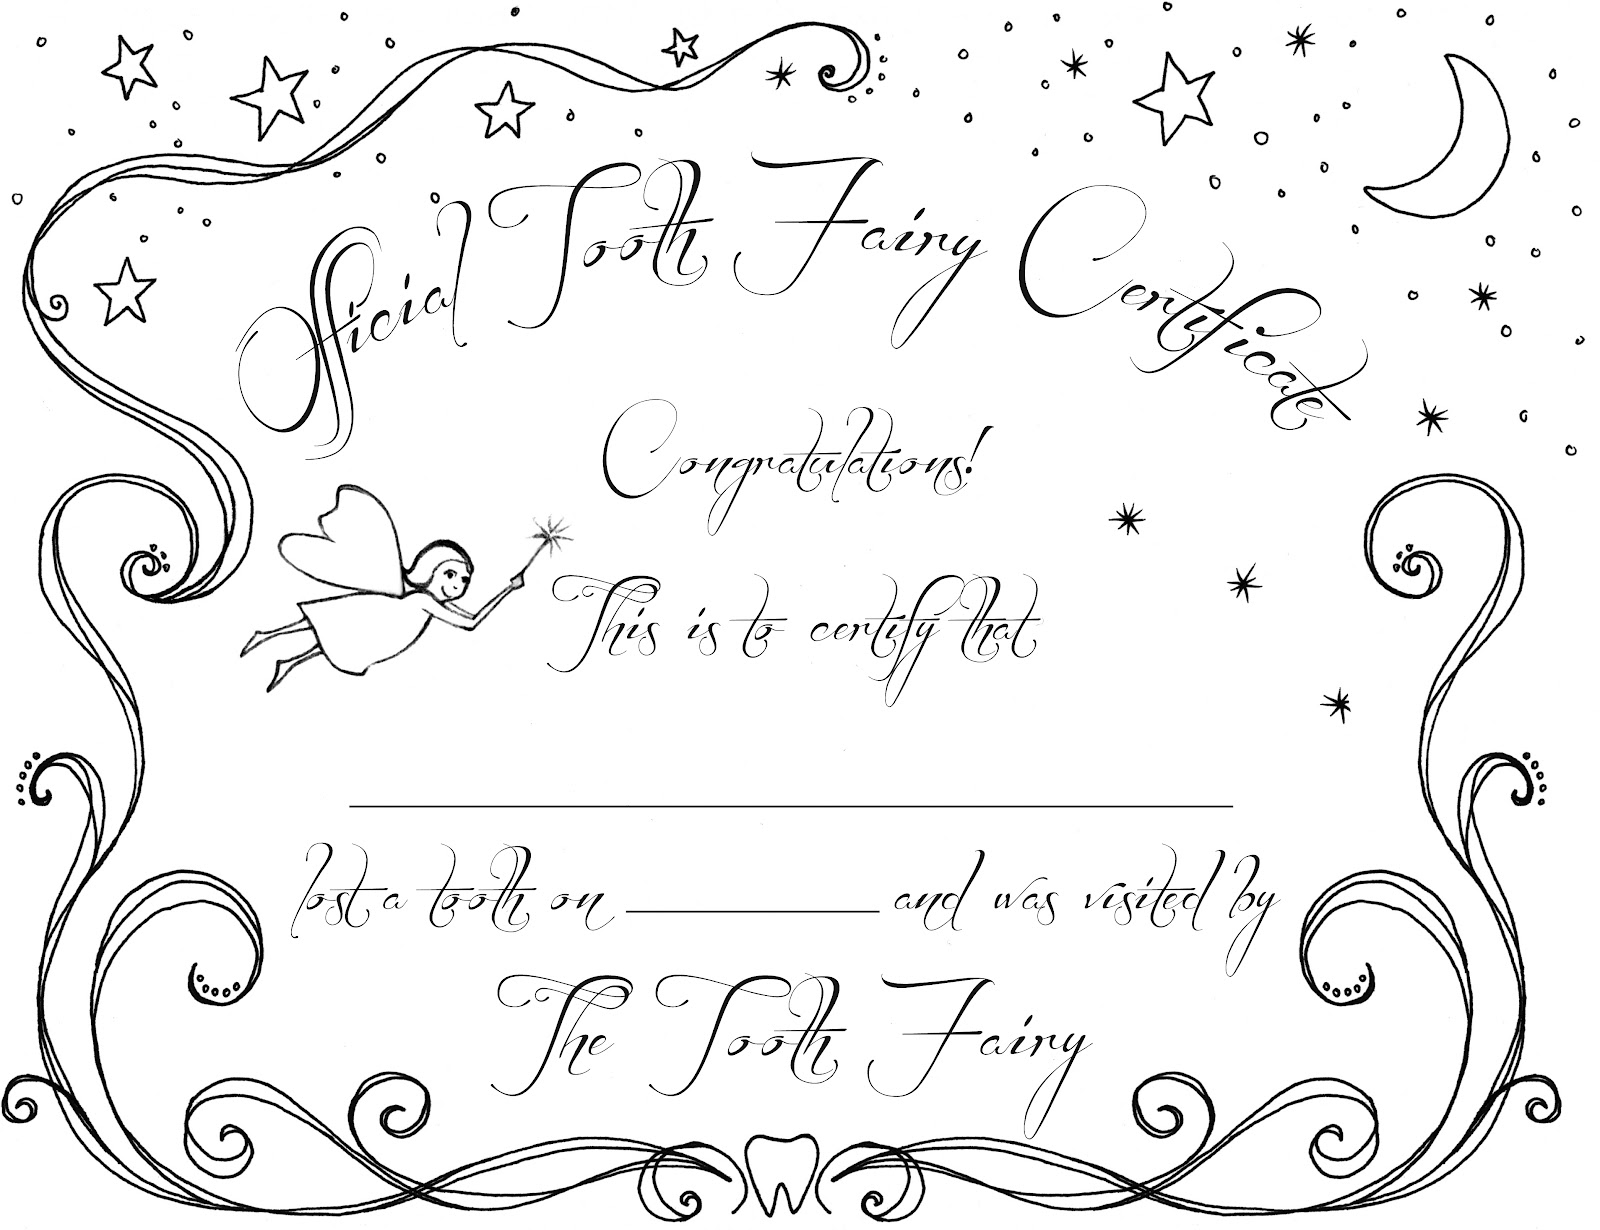 Ccpatchwork tooth fairy certificate tooth fairy certificate pronofoot35fo Image collections